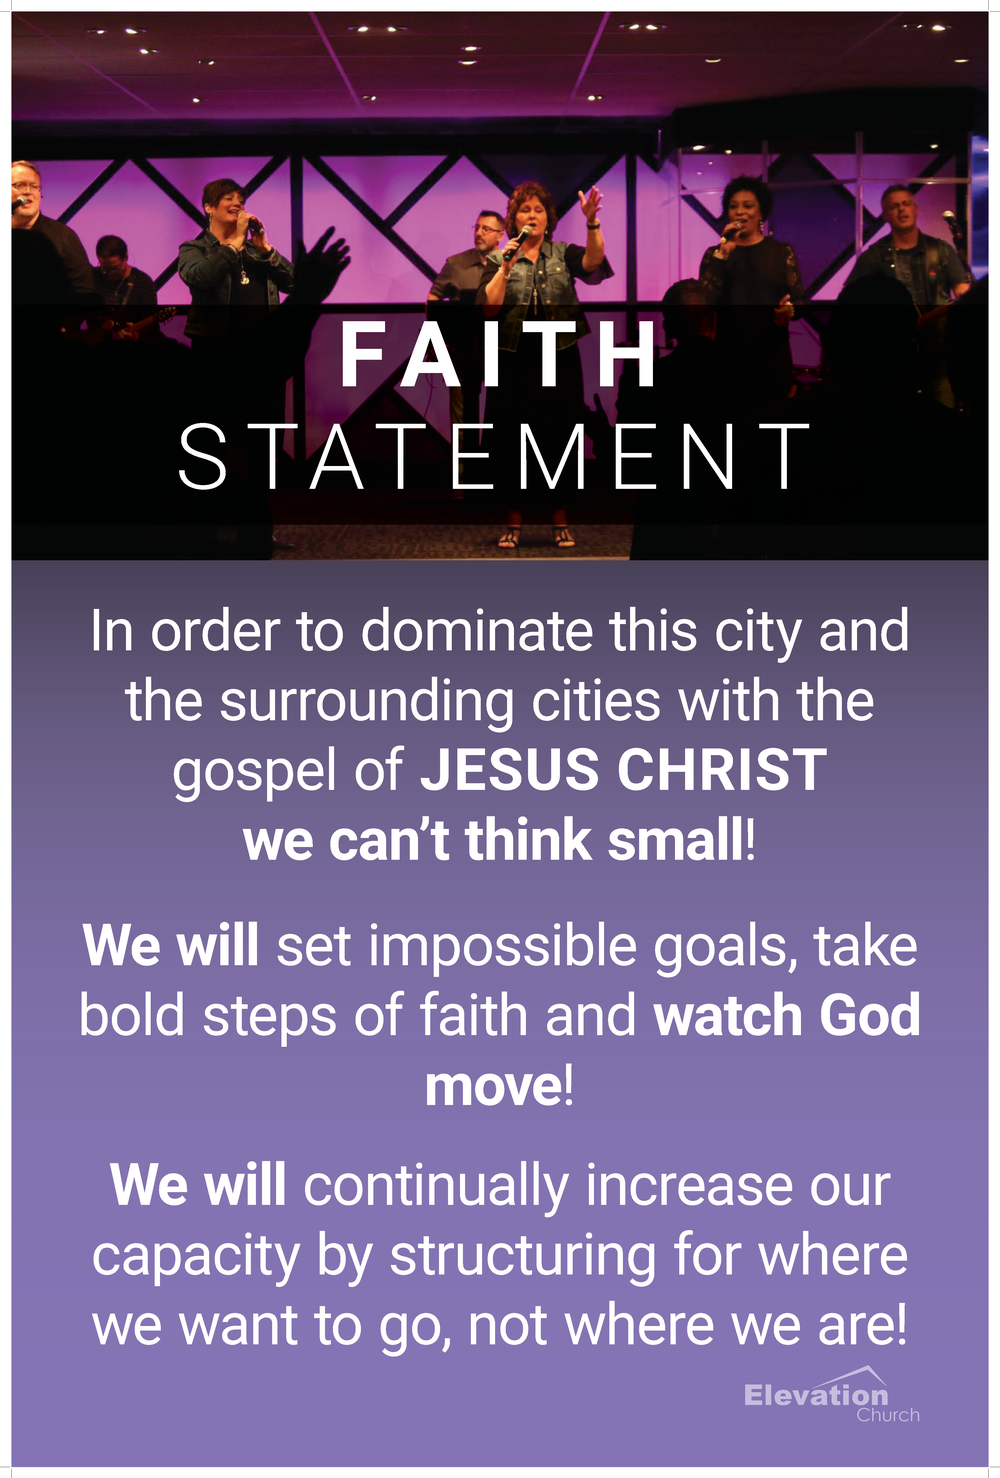 Elevation Church Ministries Statements for Foyer Wall 1